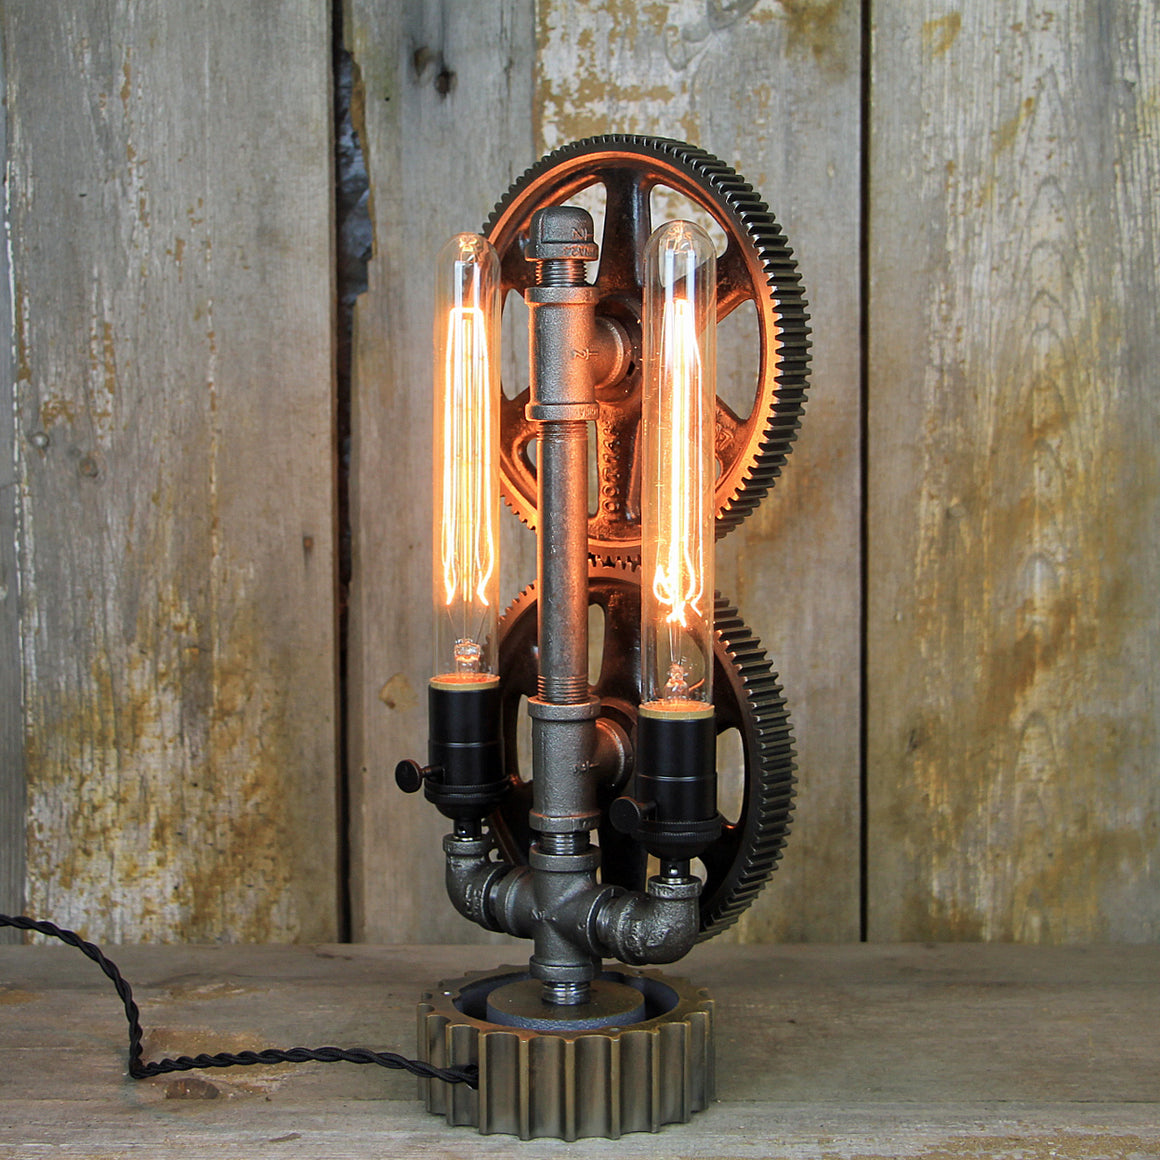 Steampunk Table Lamp with that Great Industrial Look - Steampunk Desk Lamp #260 - The Lighting Works